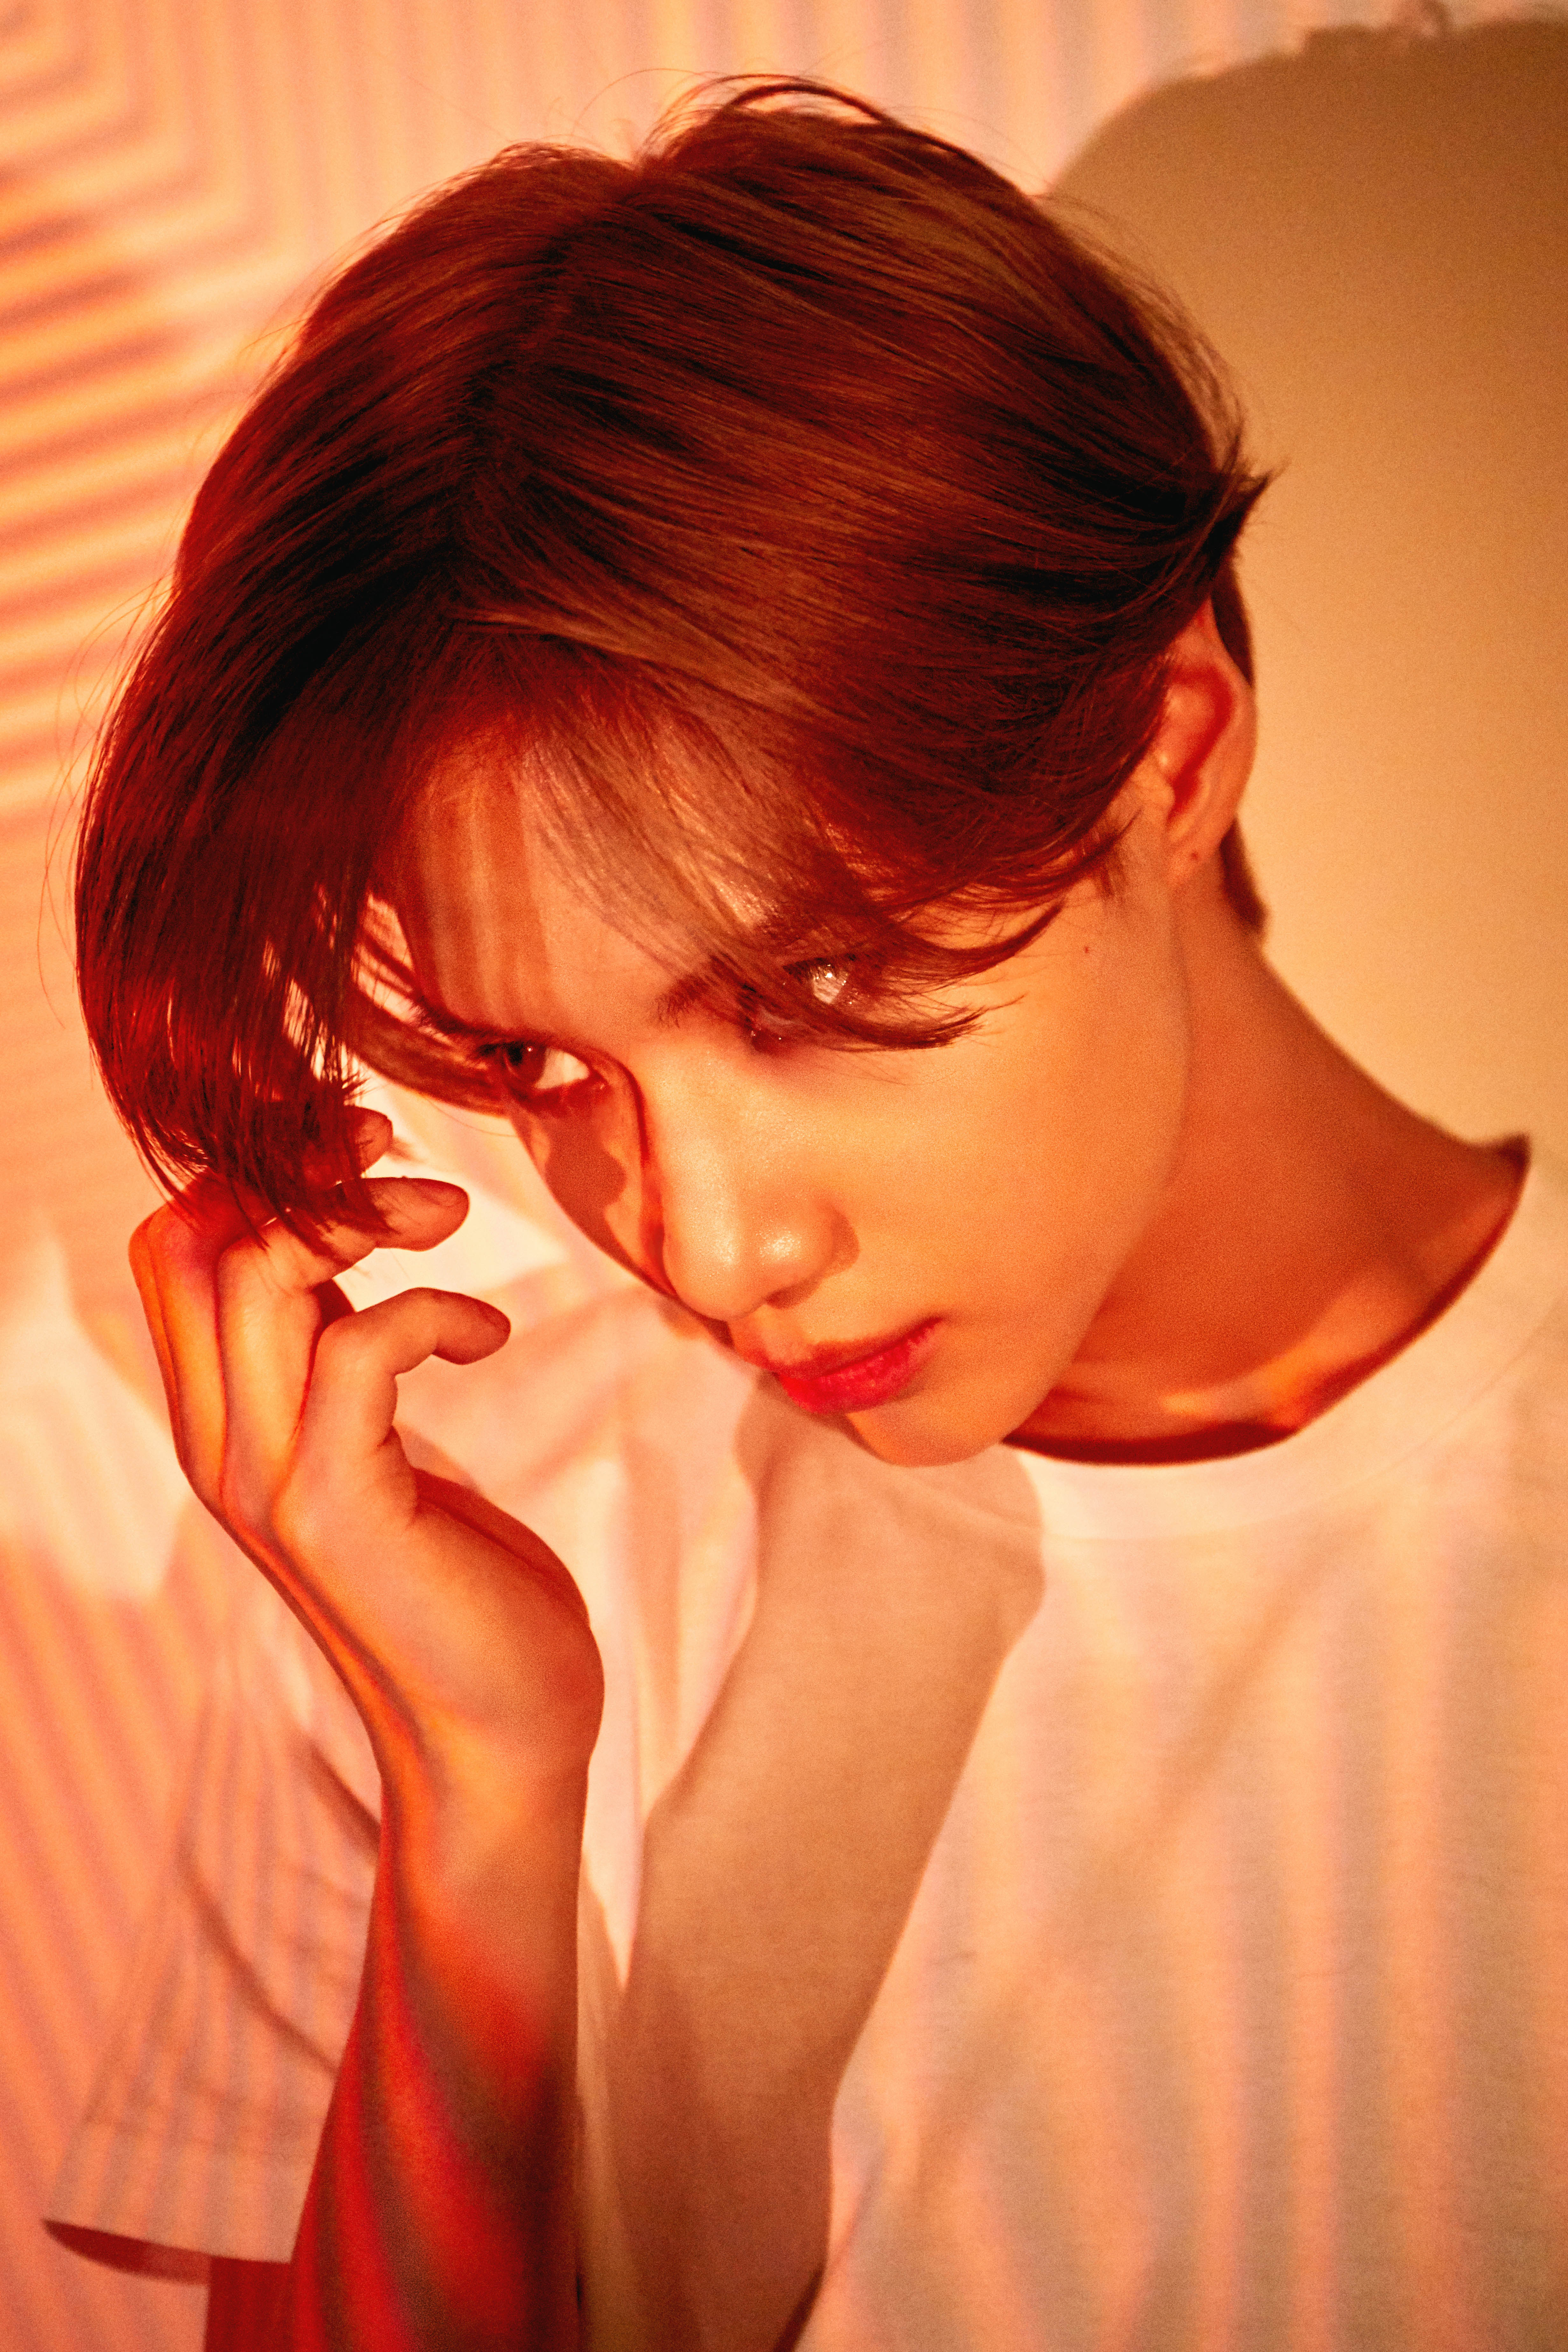 Why Taemin Was First in SHINee to Go Solo - KultScene